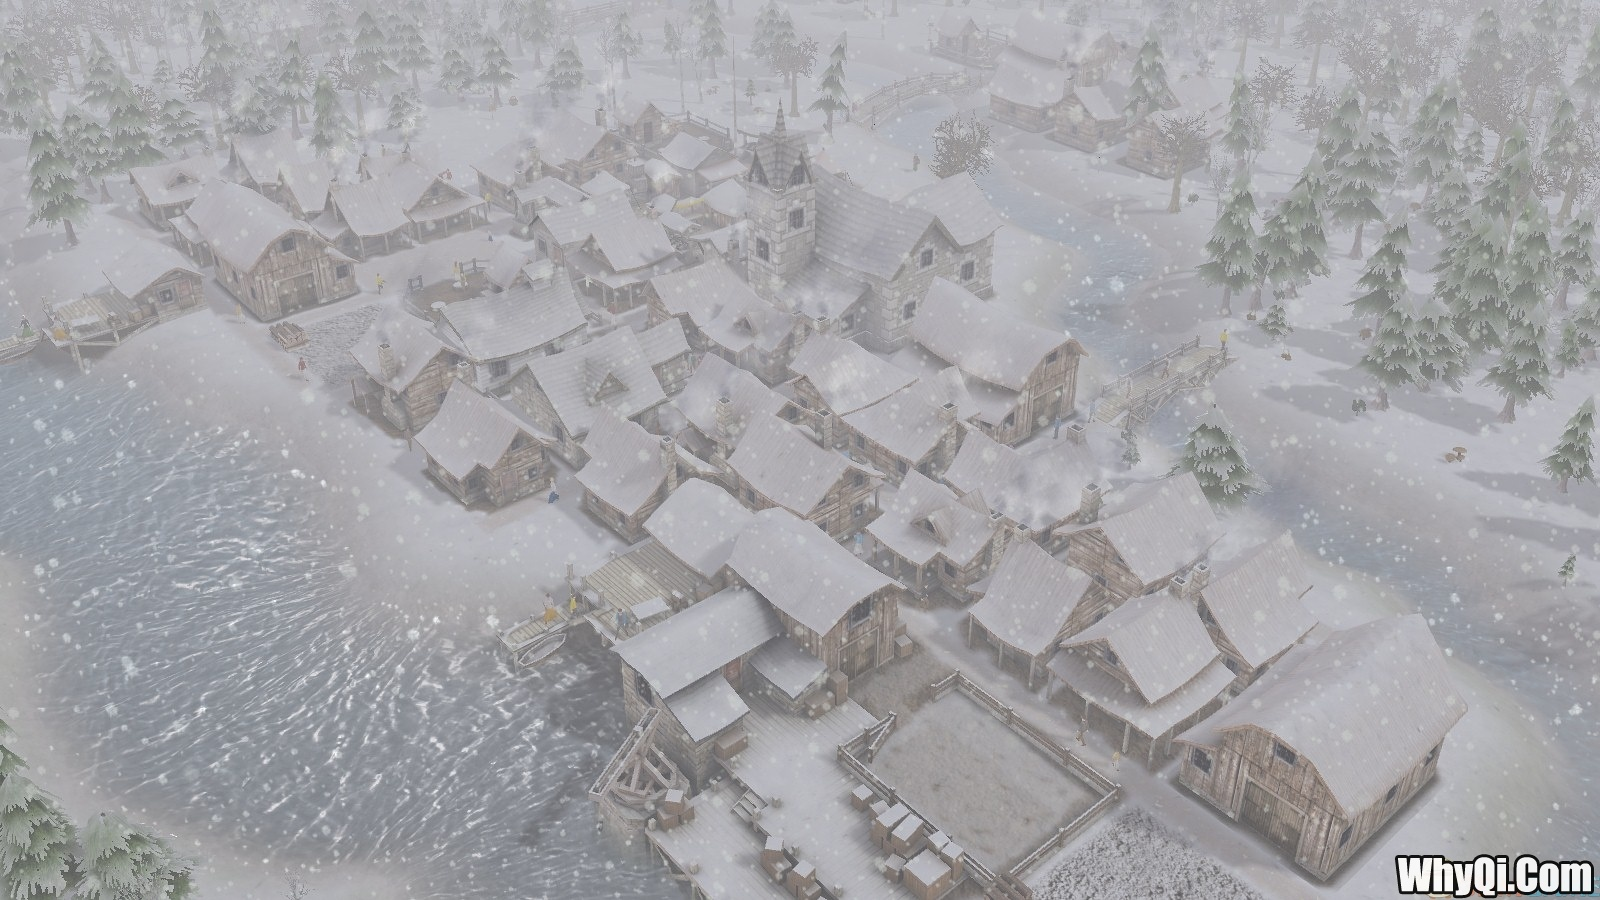 PC-[放逐之城]Banished 64位+32位游戏CE修改下载 [作弊器] [修改器] [Cheat Engine] - 第8张  | 歪奇